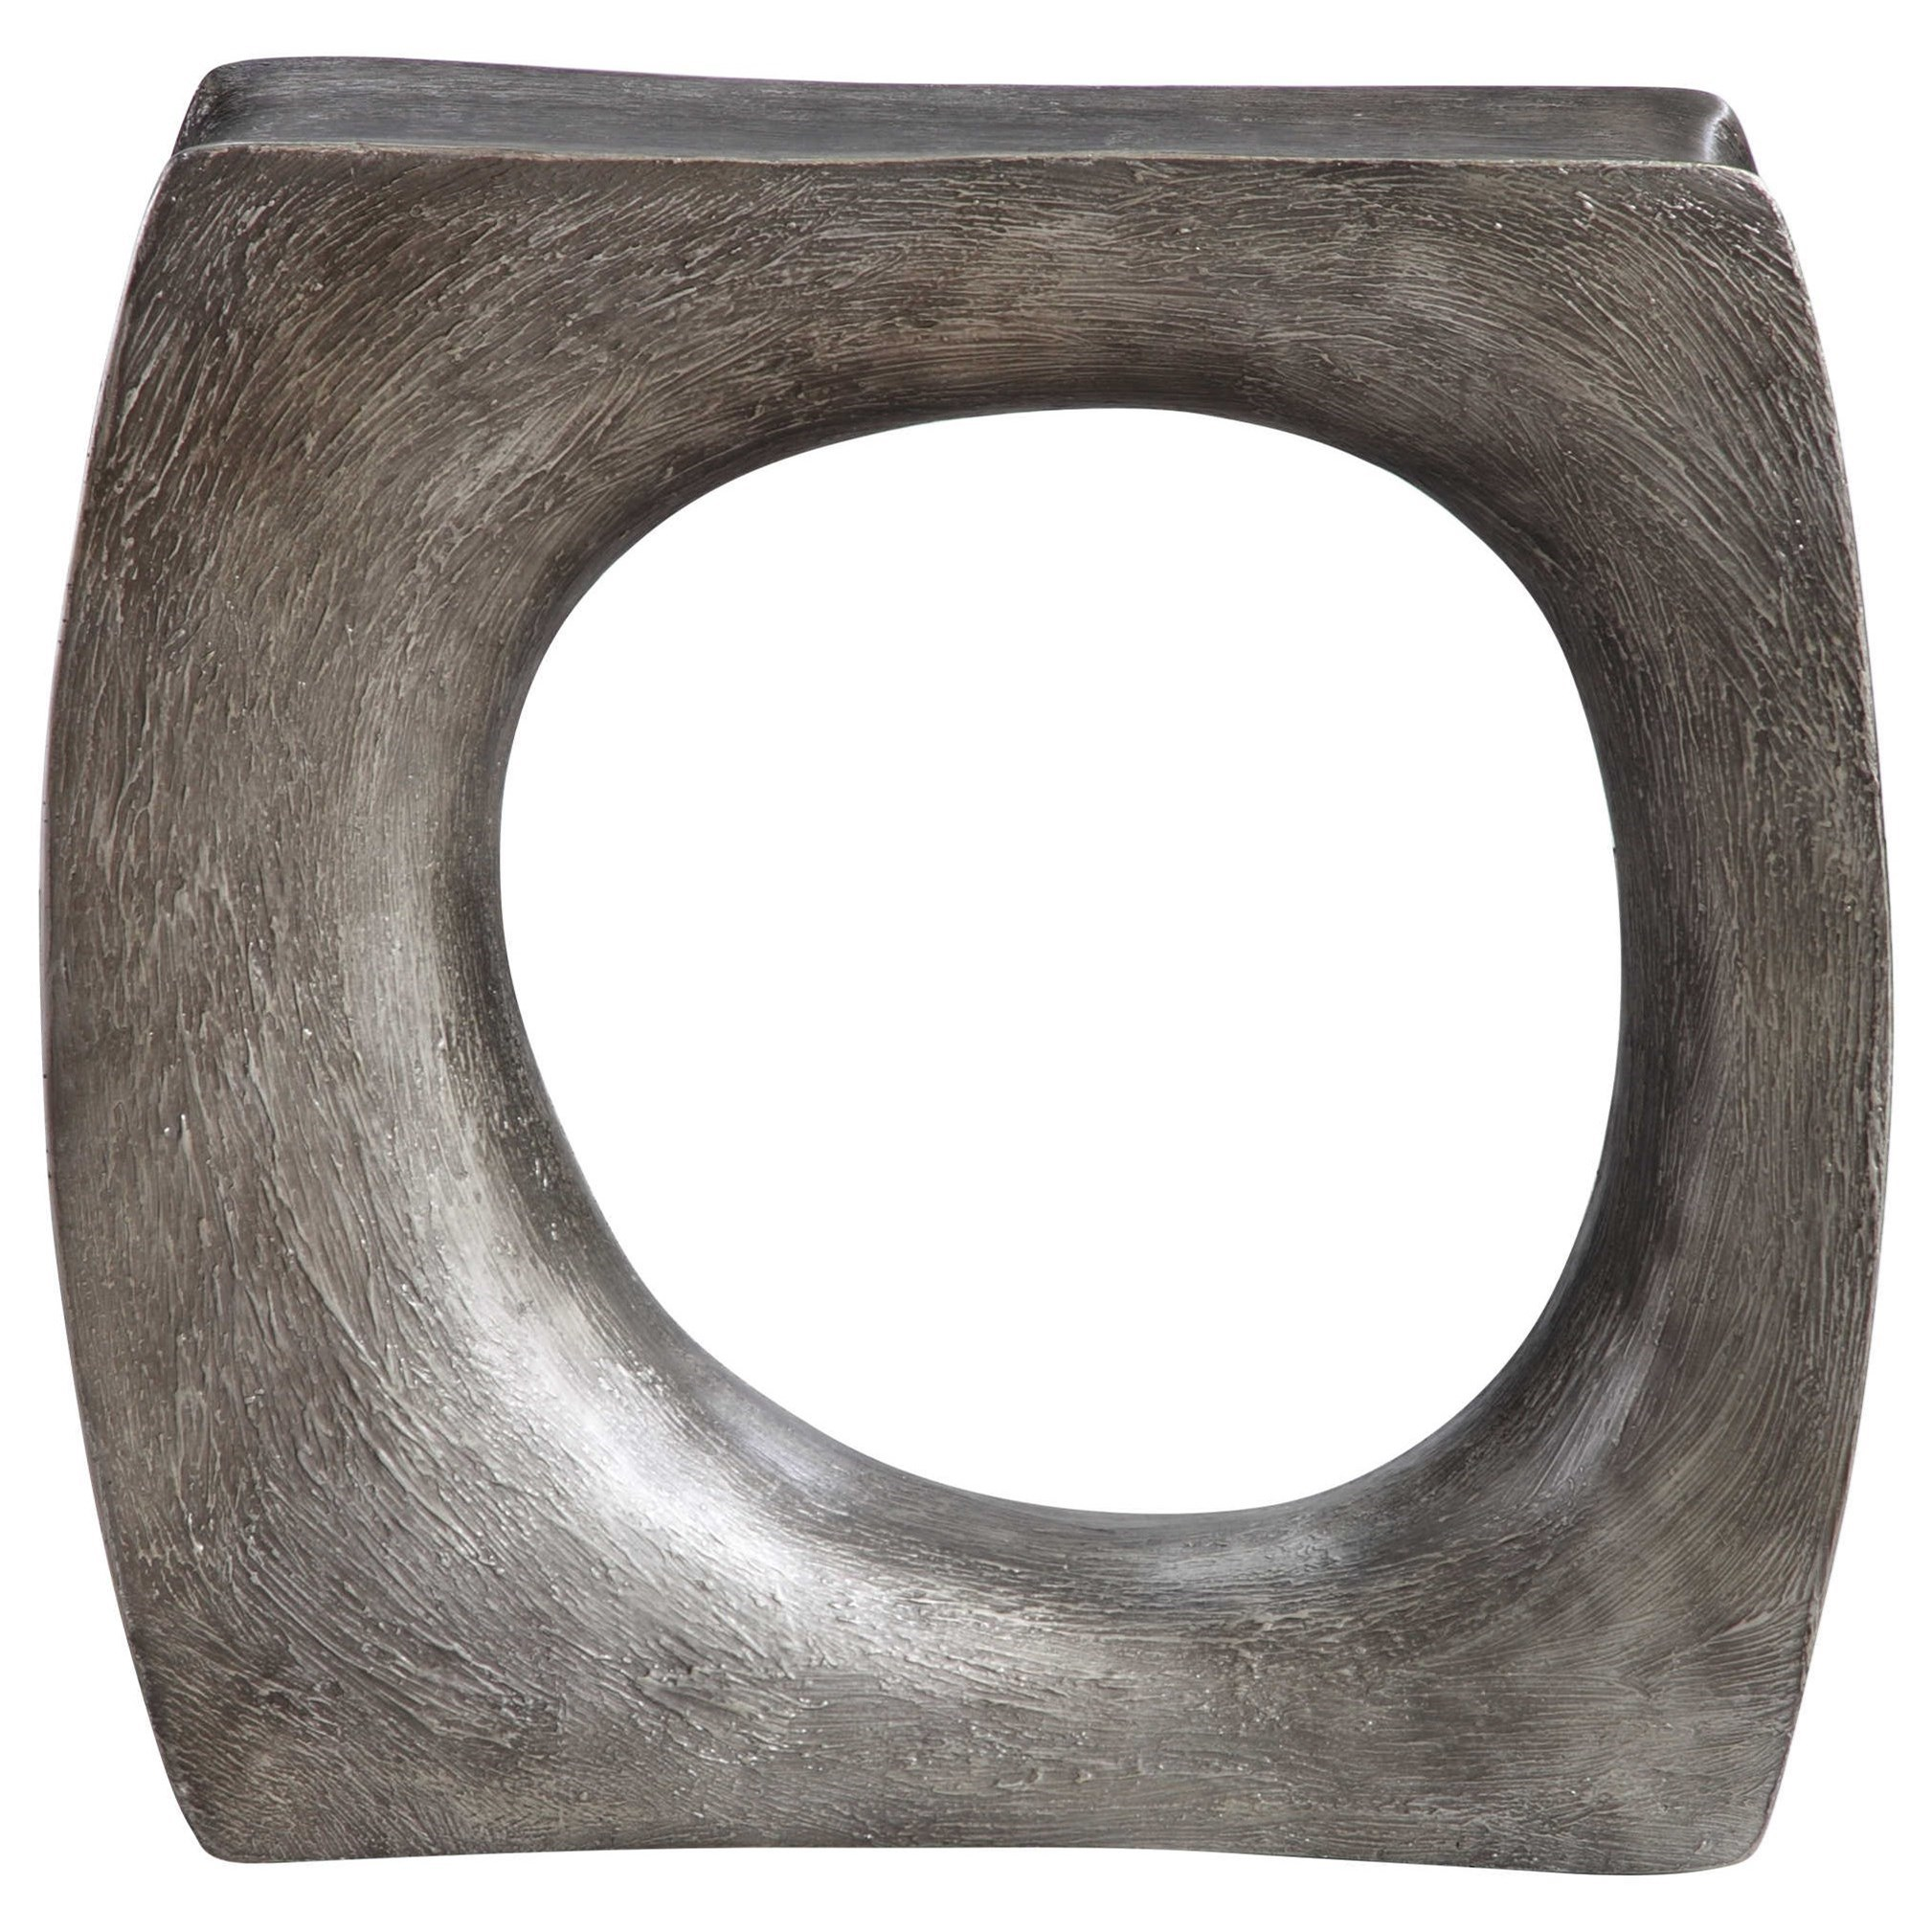 Accent Furniture - Occasional Tables Valira Modern Side Table by Uttermost at Del Sol Furniture